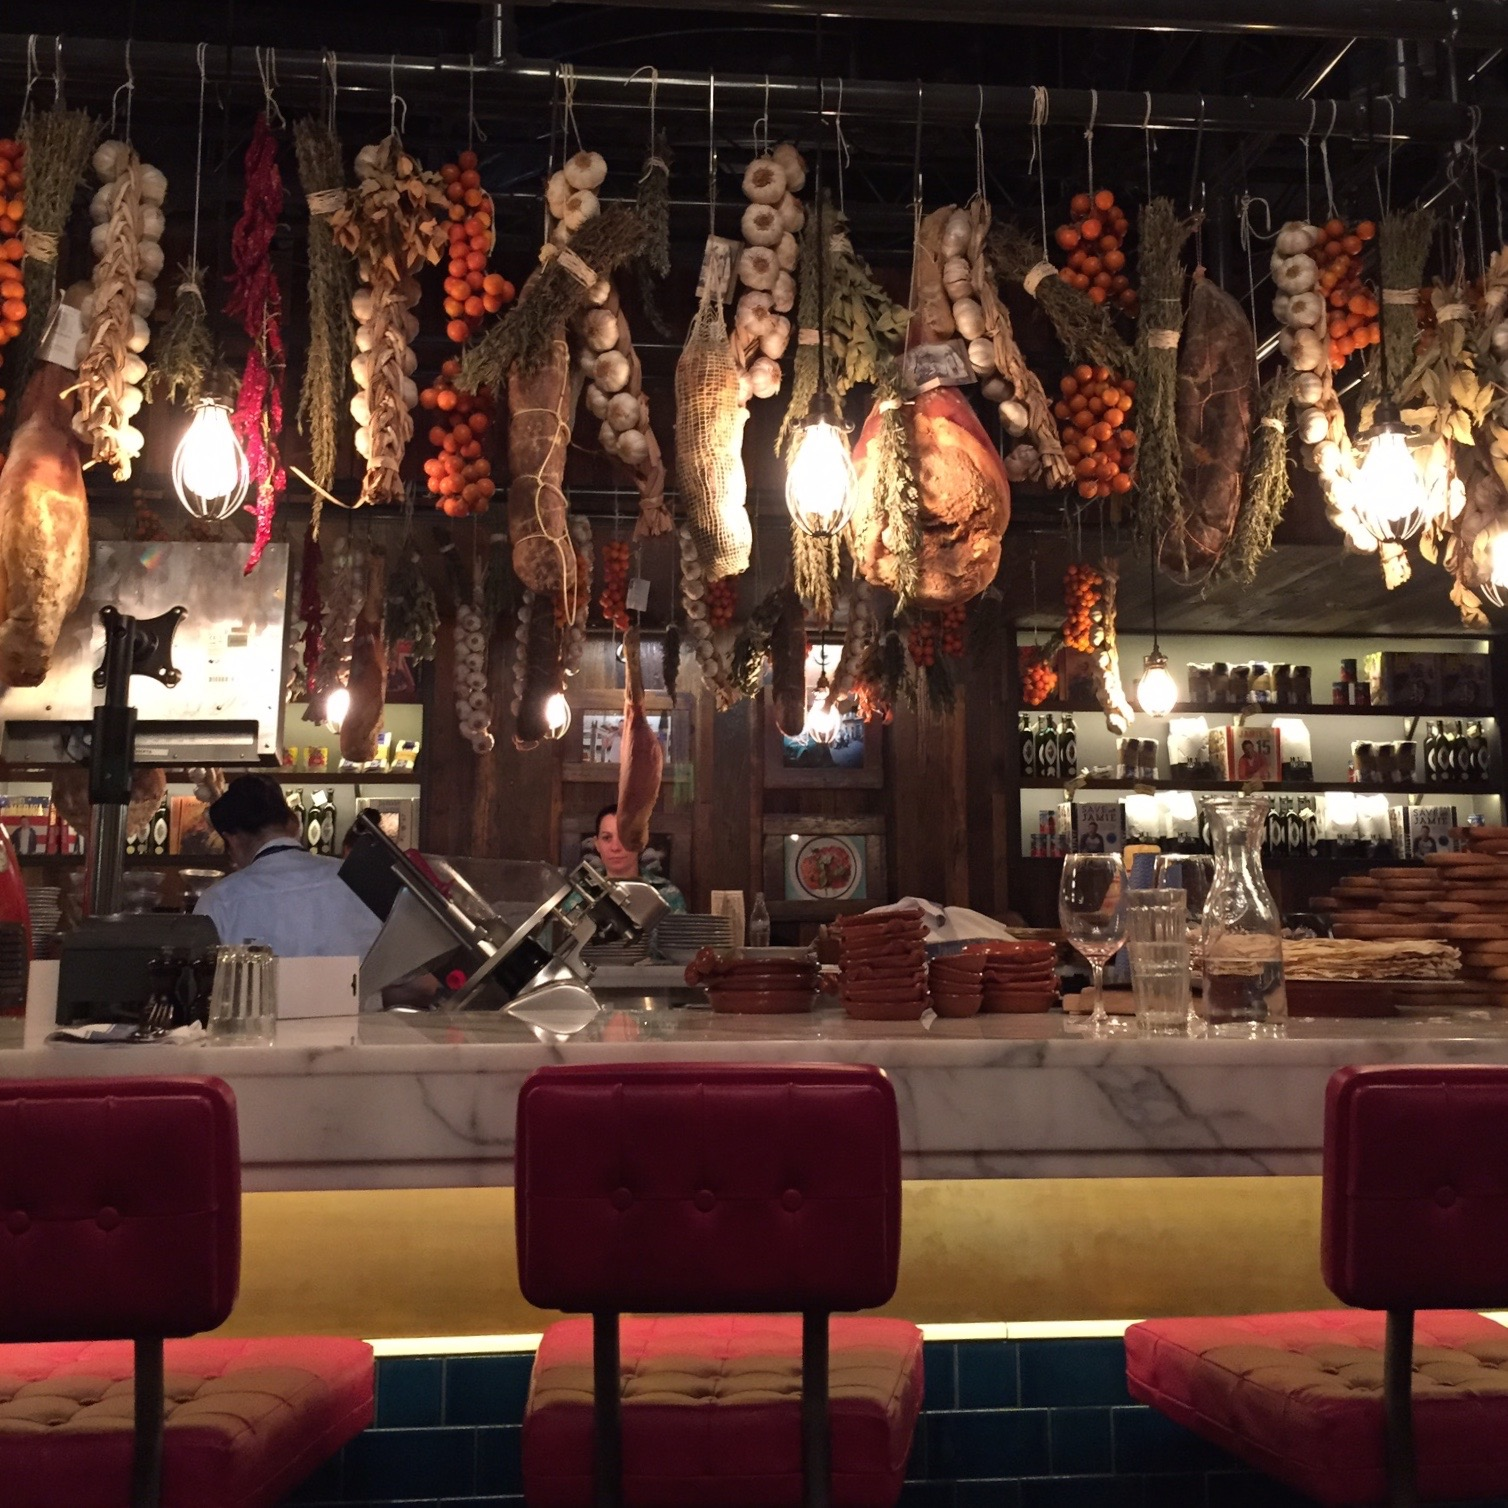 Real displays of cured meats and veggies hang over the bar seating at Jamies